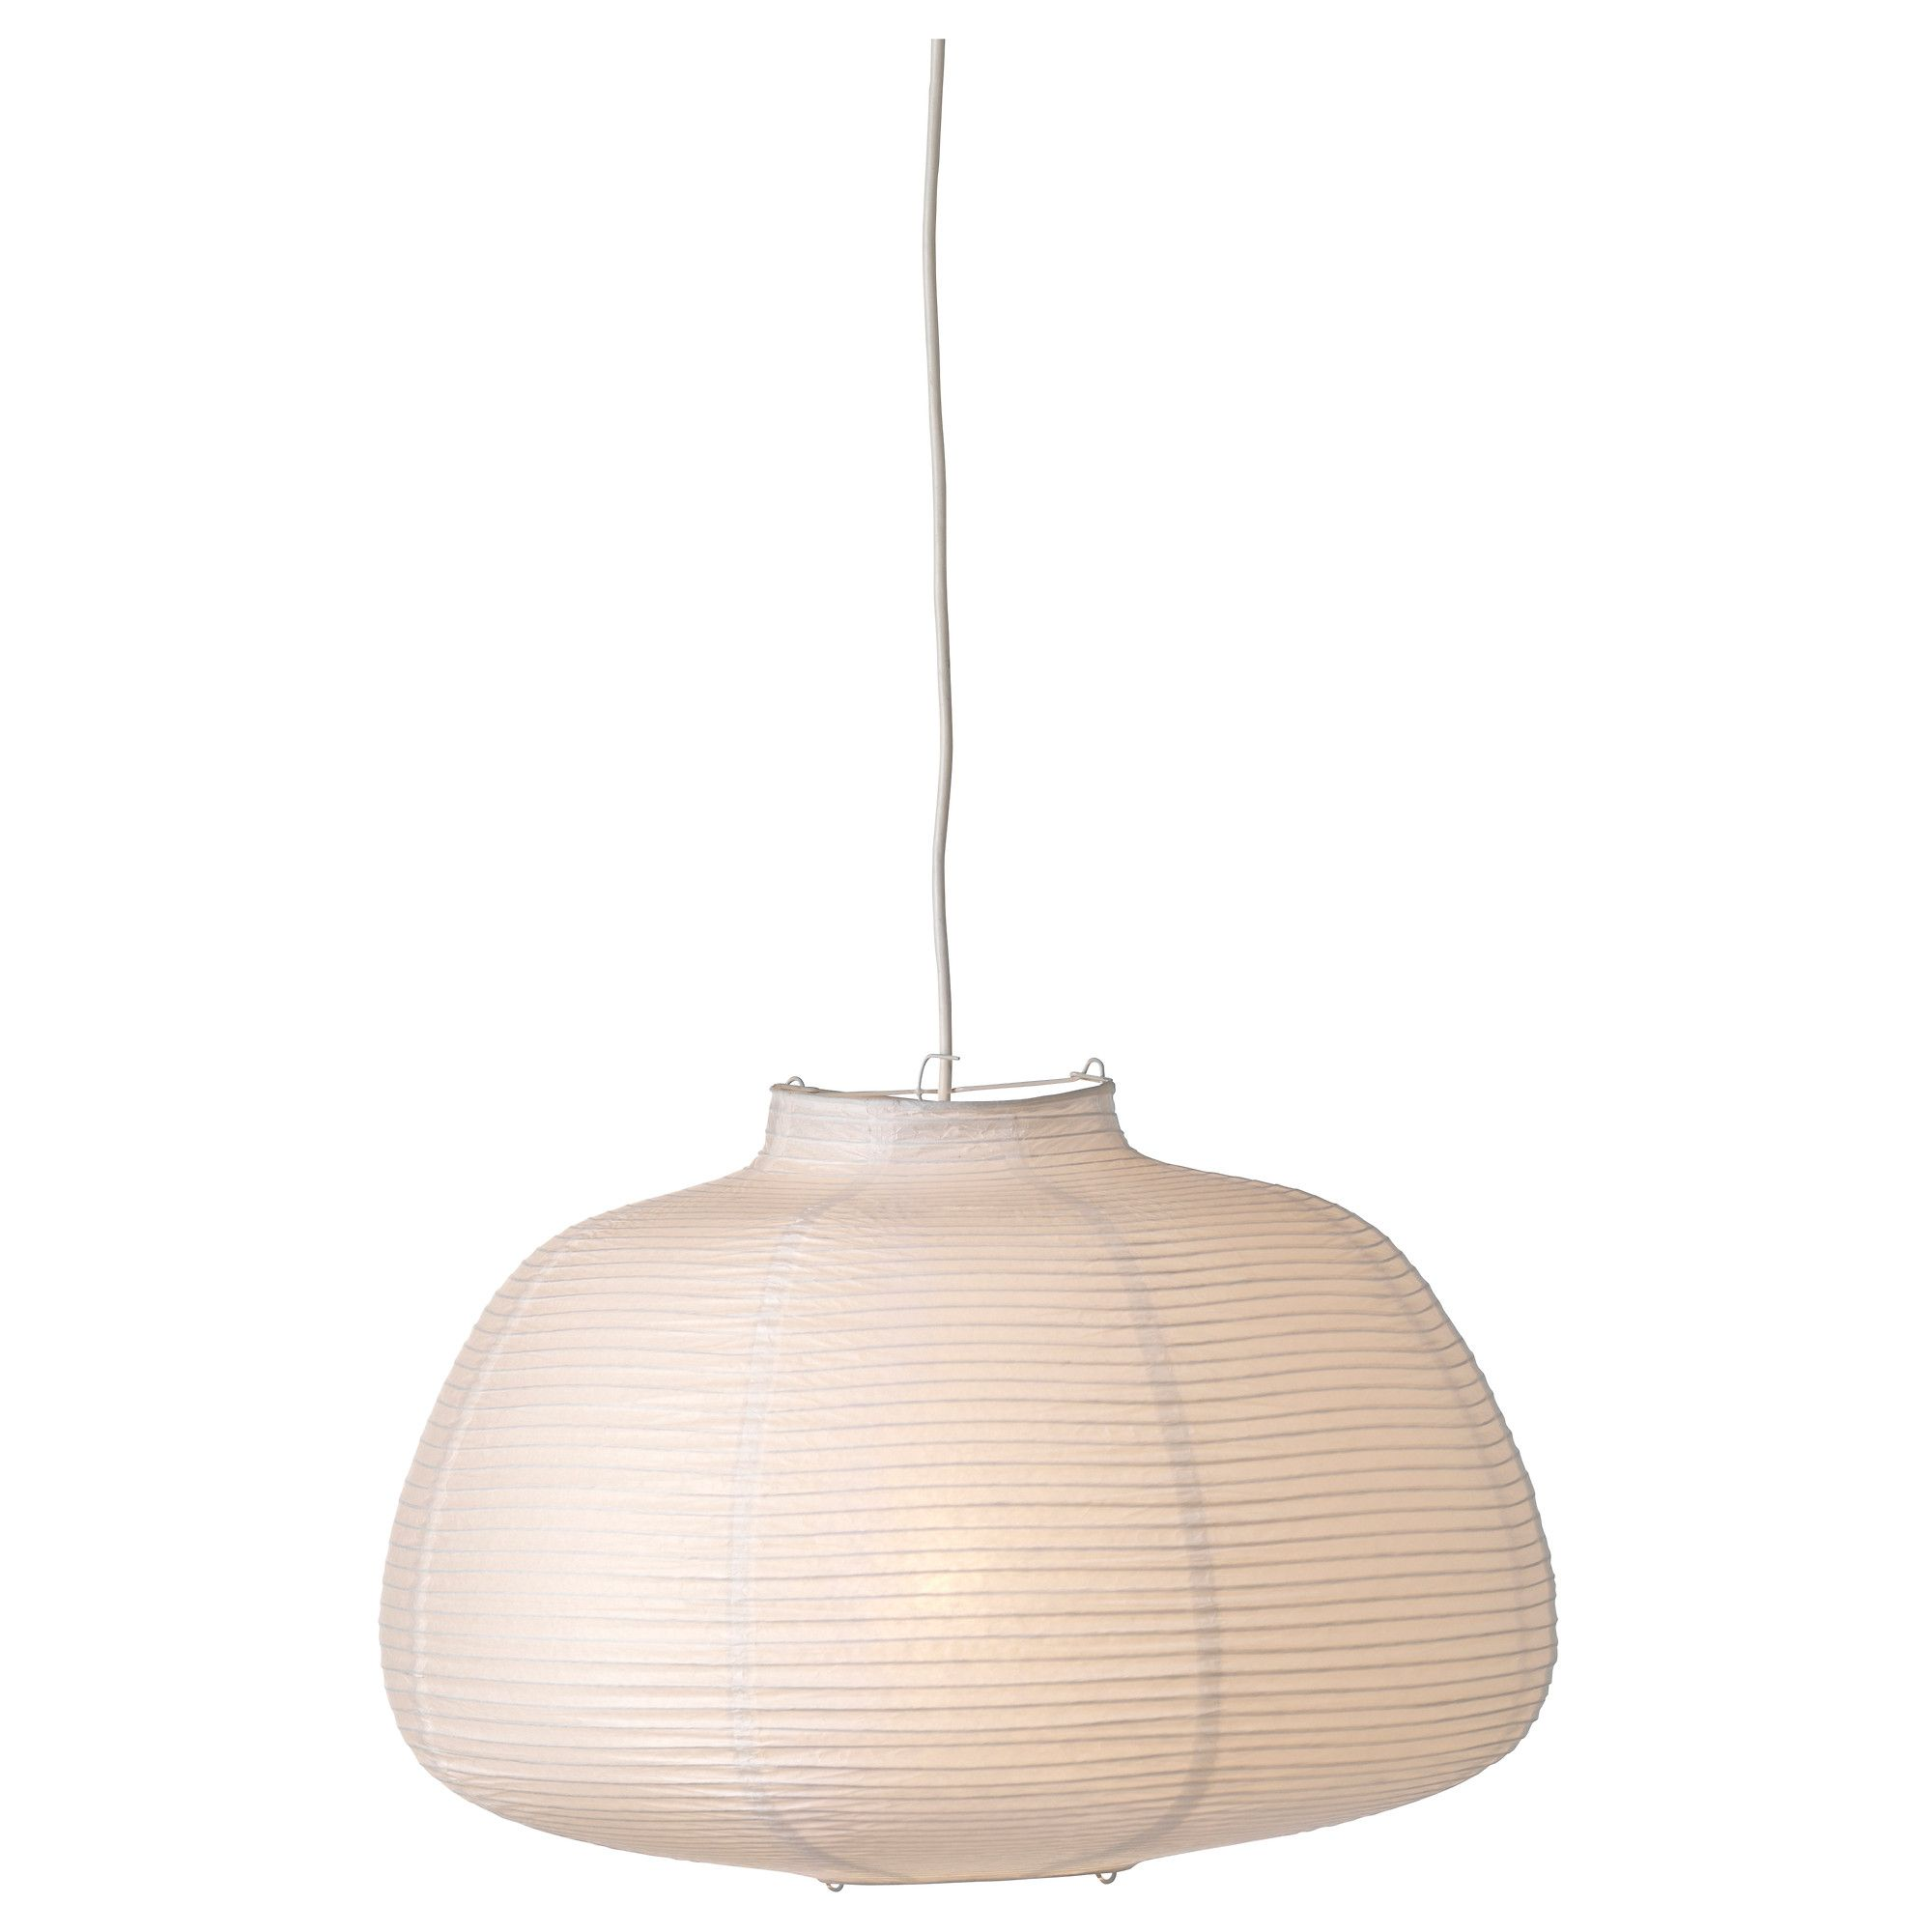 Vte pendant lamp shade ikea i wonder if itd look good paired home furnishings kitchens appliances sofas beds mattresses ikea aloadofball Image collections